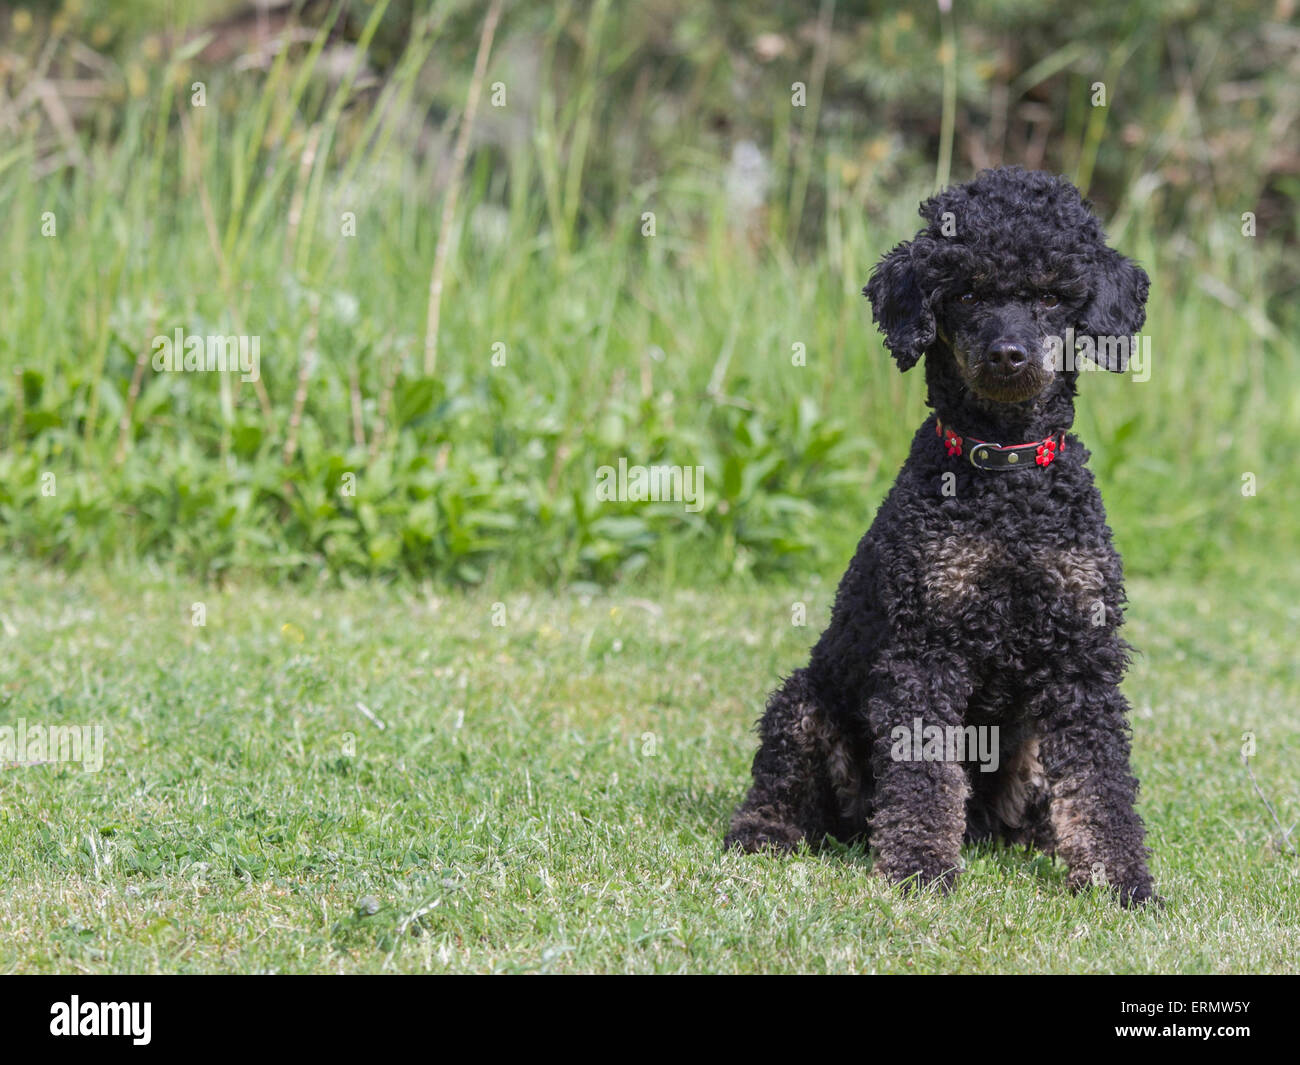 Black and tan poodle with collar sitting on lawn, looking into the camera. - Stock Image